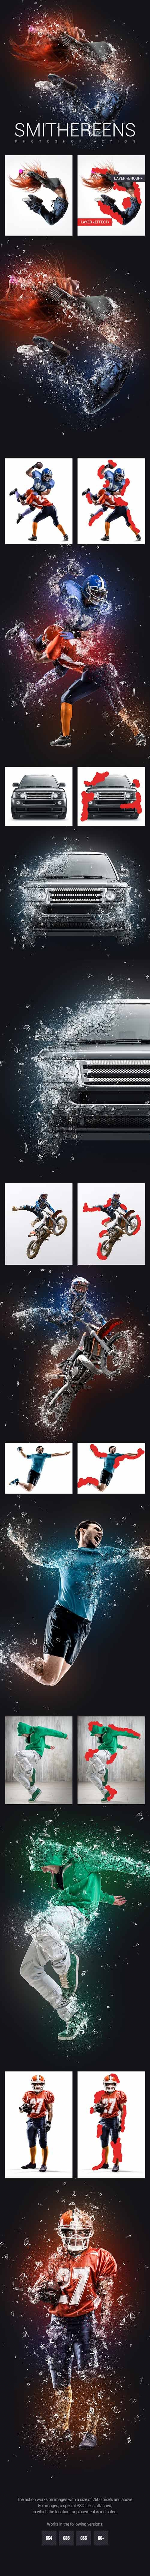 GraphicRiver - Smithereens Photoshop Action 22843789